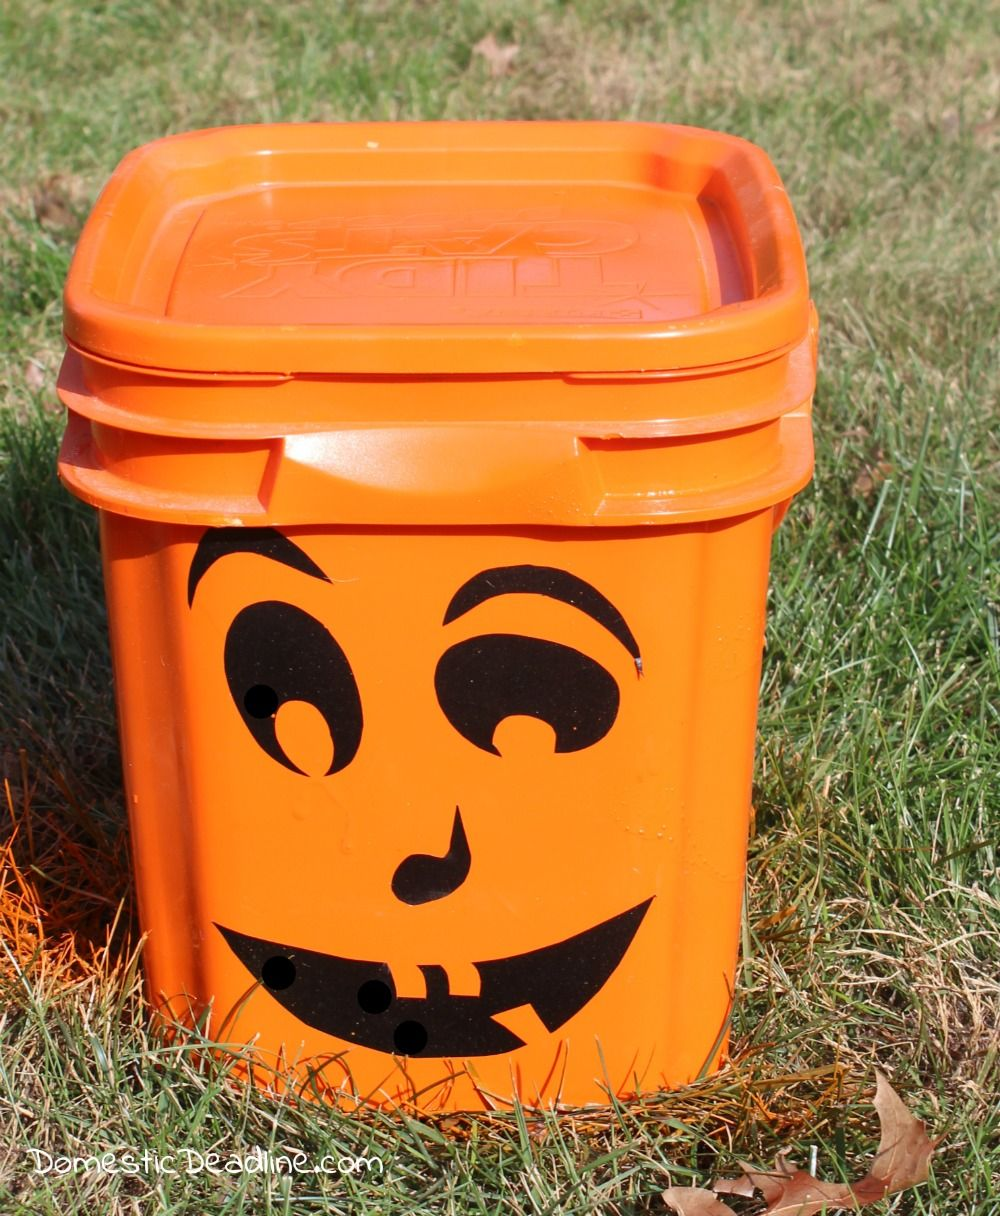 Project Challenge DIY Pumpkin Bucket Recycled crafts